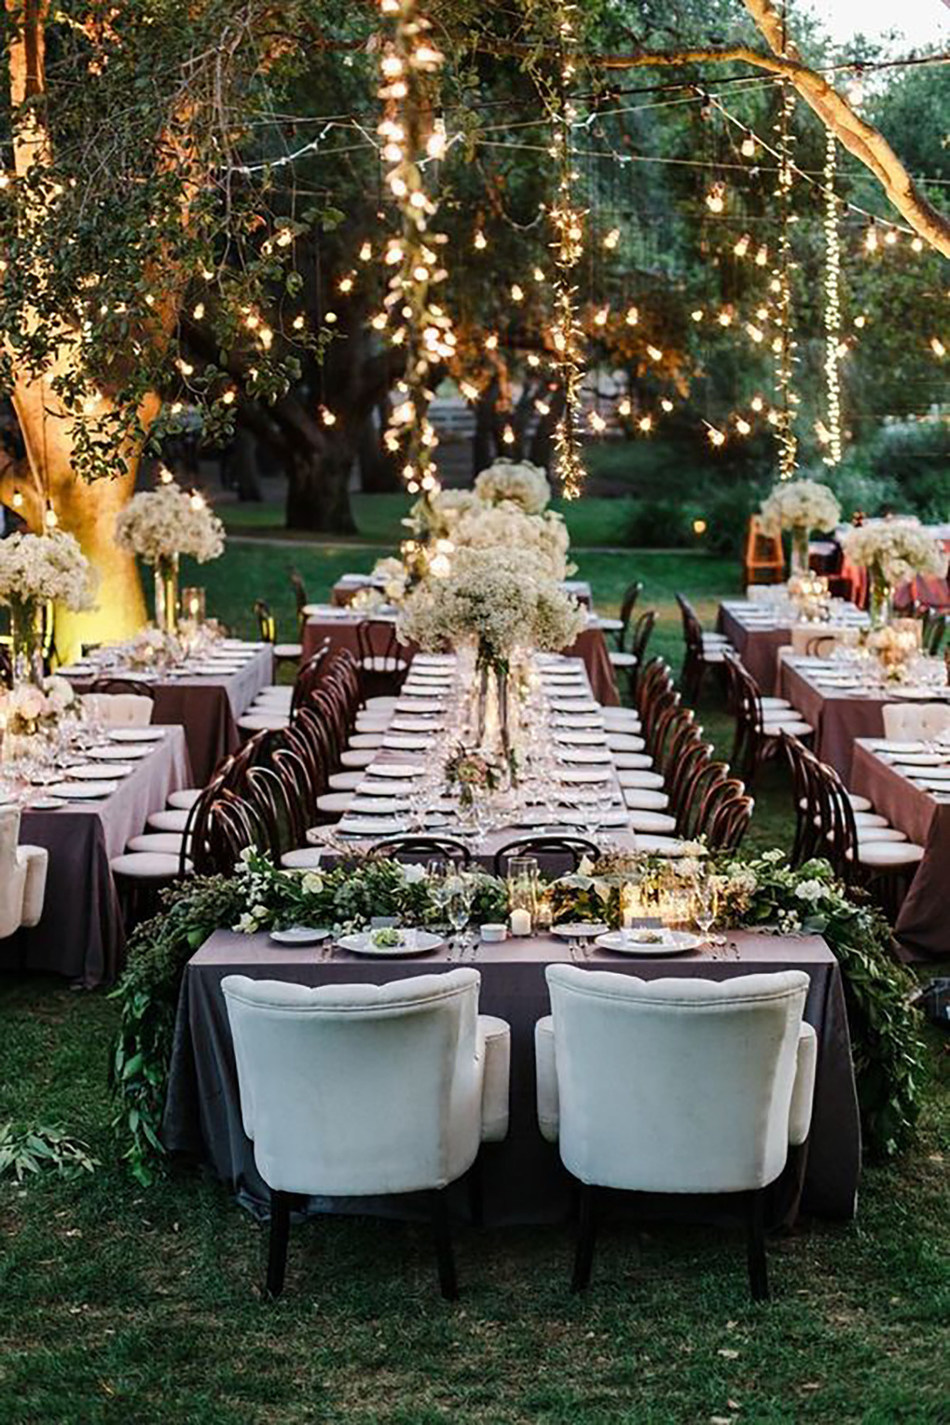 Inspired by the Pantone Color of the Year, Greenery, which symbolizes a reconnection with nature, one another and a larger purpose, we're seeing a rise in decor going au naturel and couples giving back with their weddings in more ways than one. Photo courtesy of Steve Steinhardt Photography and The Knot.